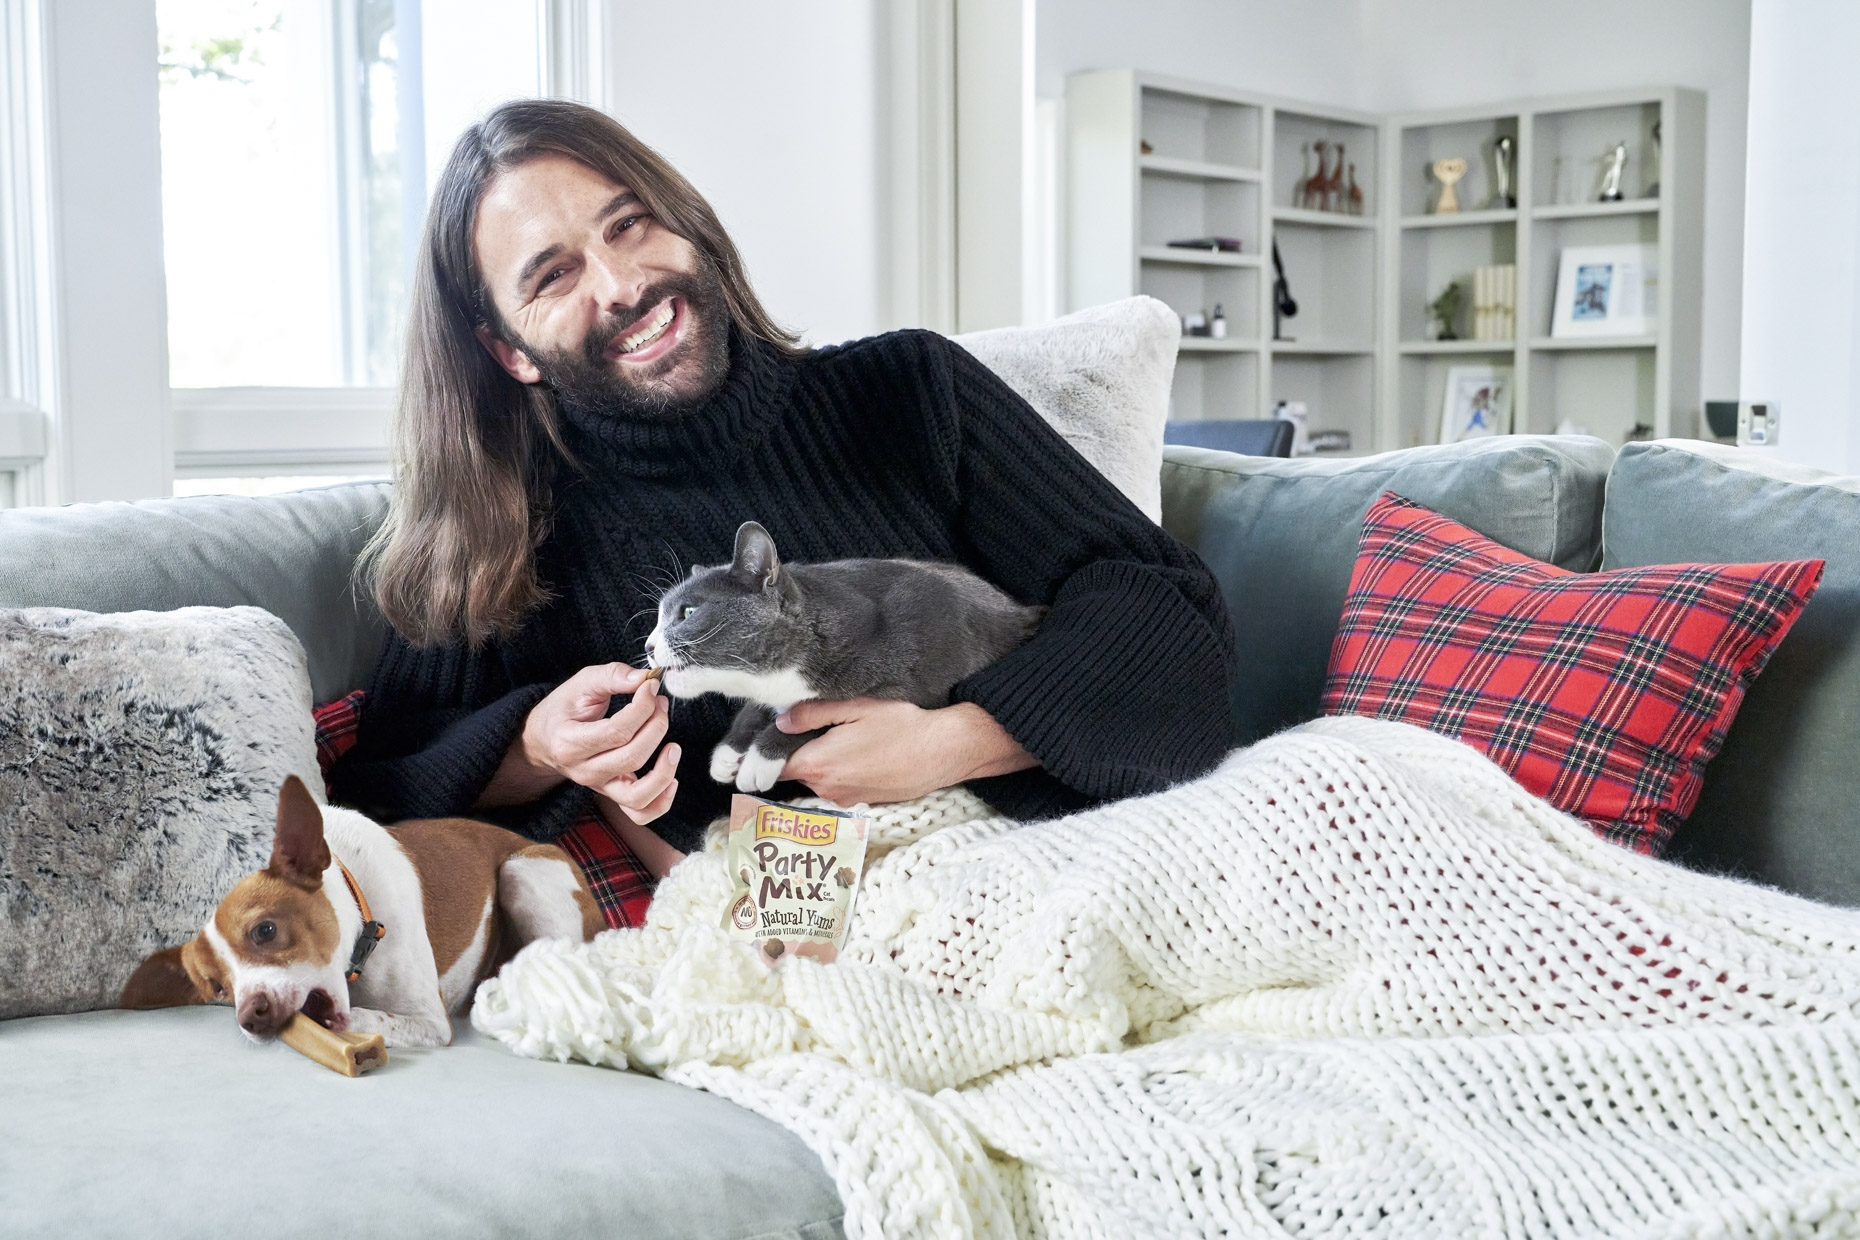 Jonathan Van Ness feeding cat Purina Friskies treat while dog chews beggin bone on couch